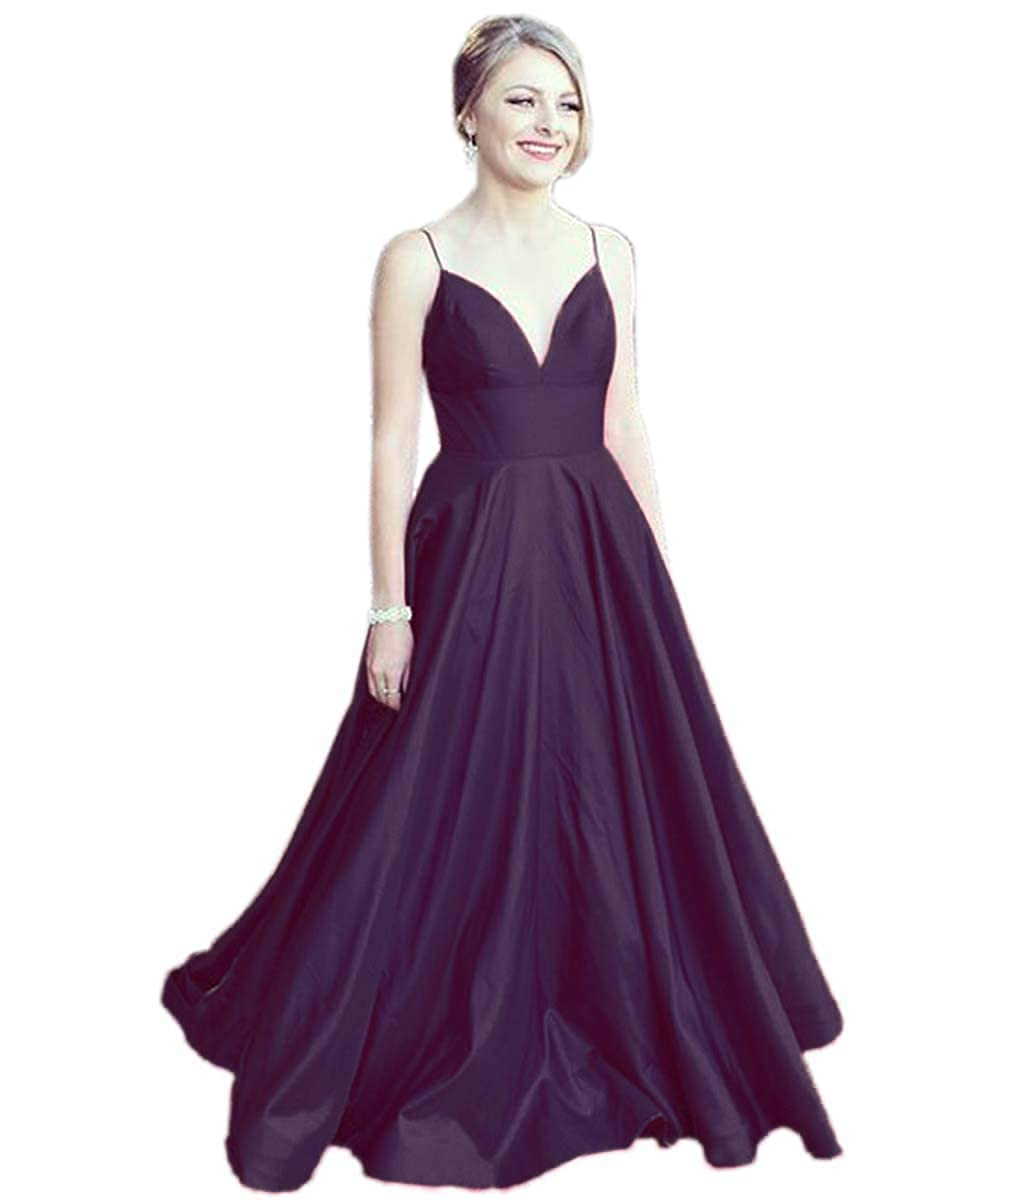 Grape Mauwey Women's Long Spaghetti Straps Satin Ball Gown Prom Dresses with Pockets